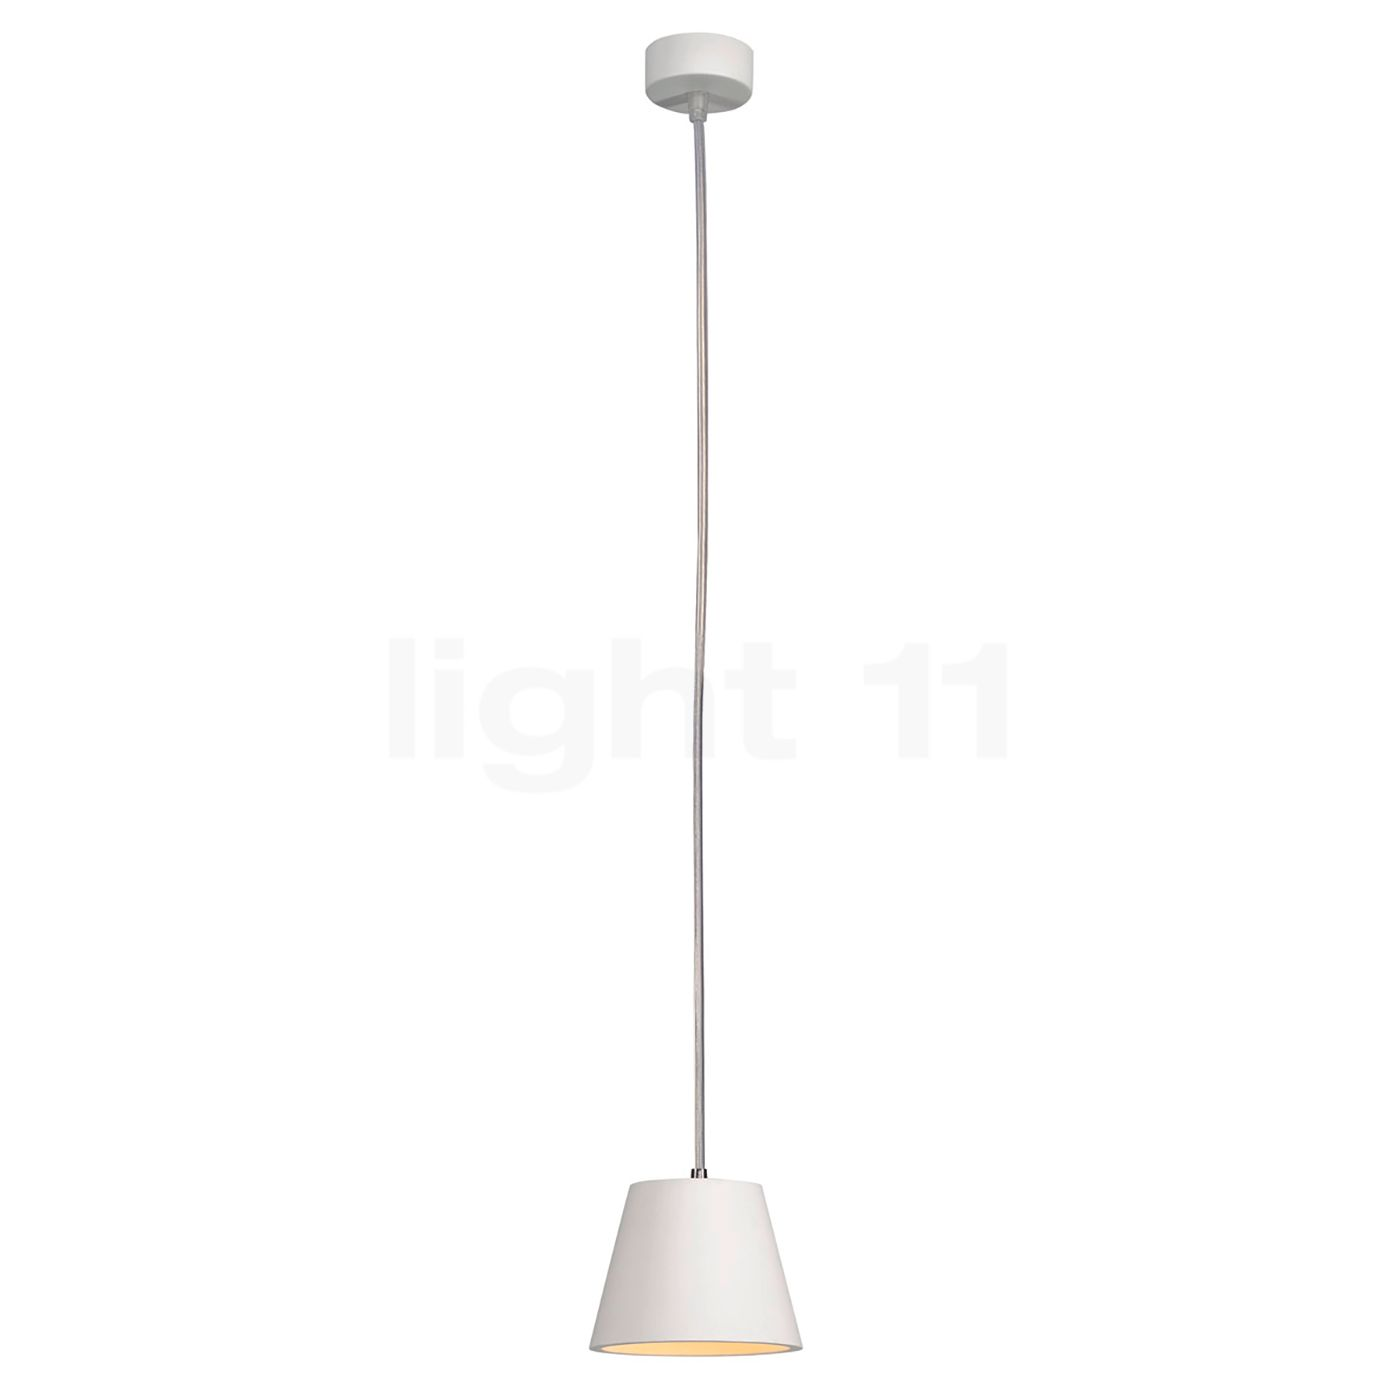 gipsy lights uk plaster co shaped lamp cone pendant